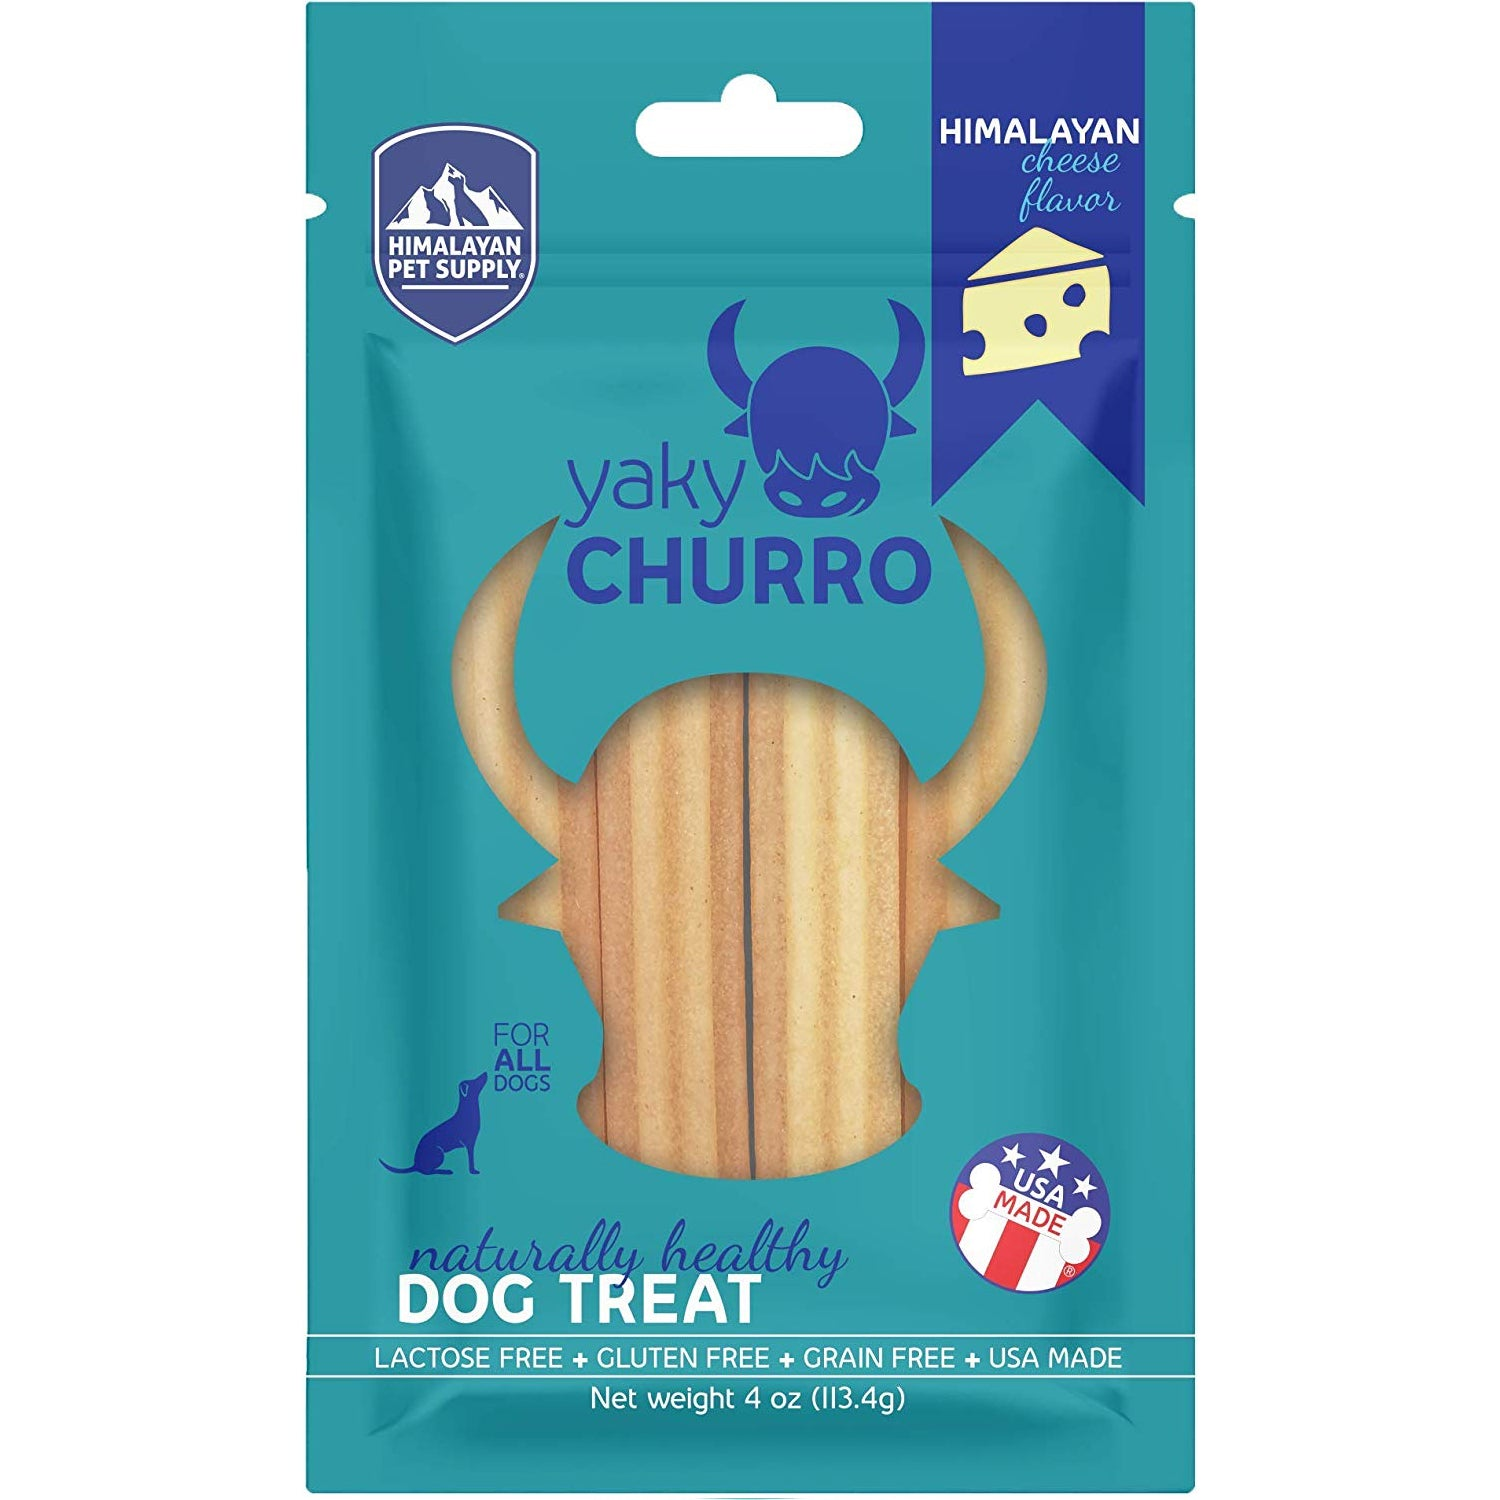 Himalayan Dog Chew Yaky Churro Himalayan Cheese Dog Treats